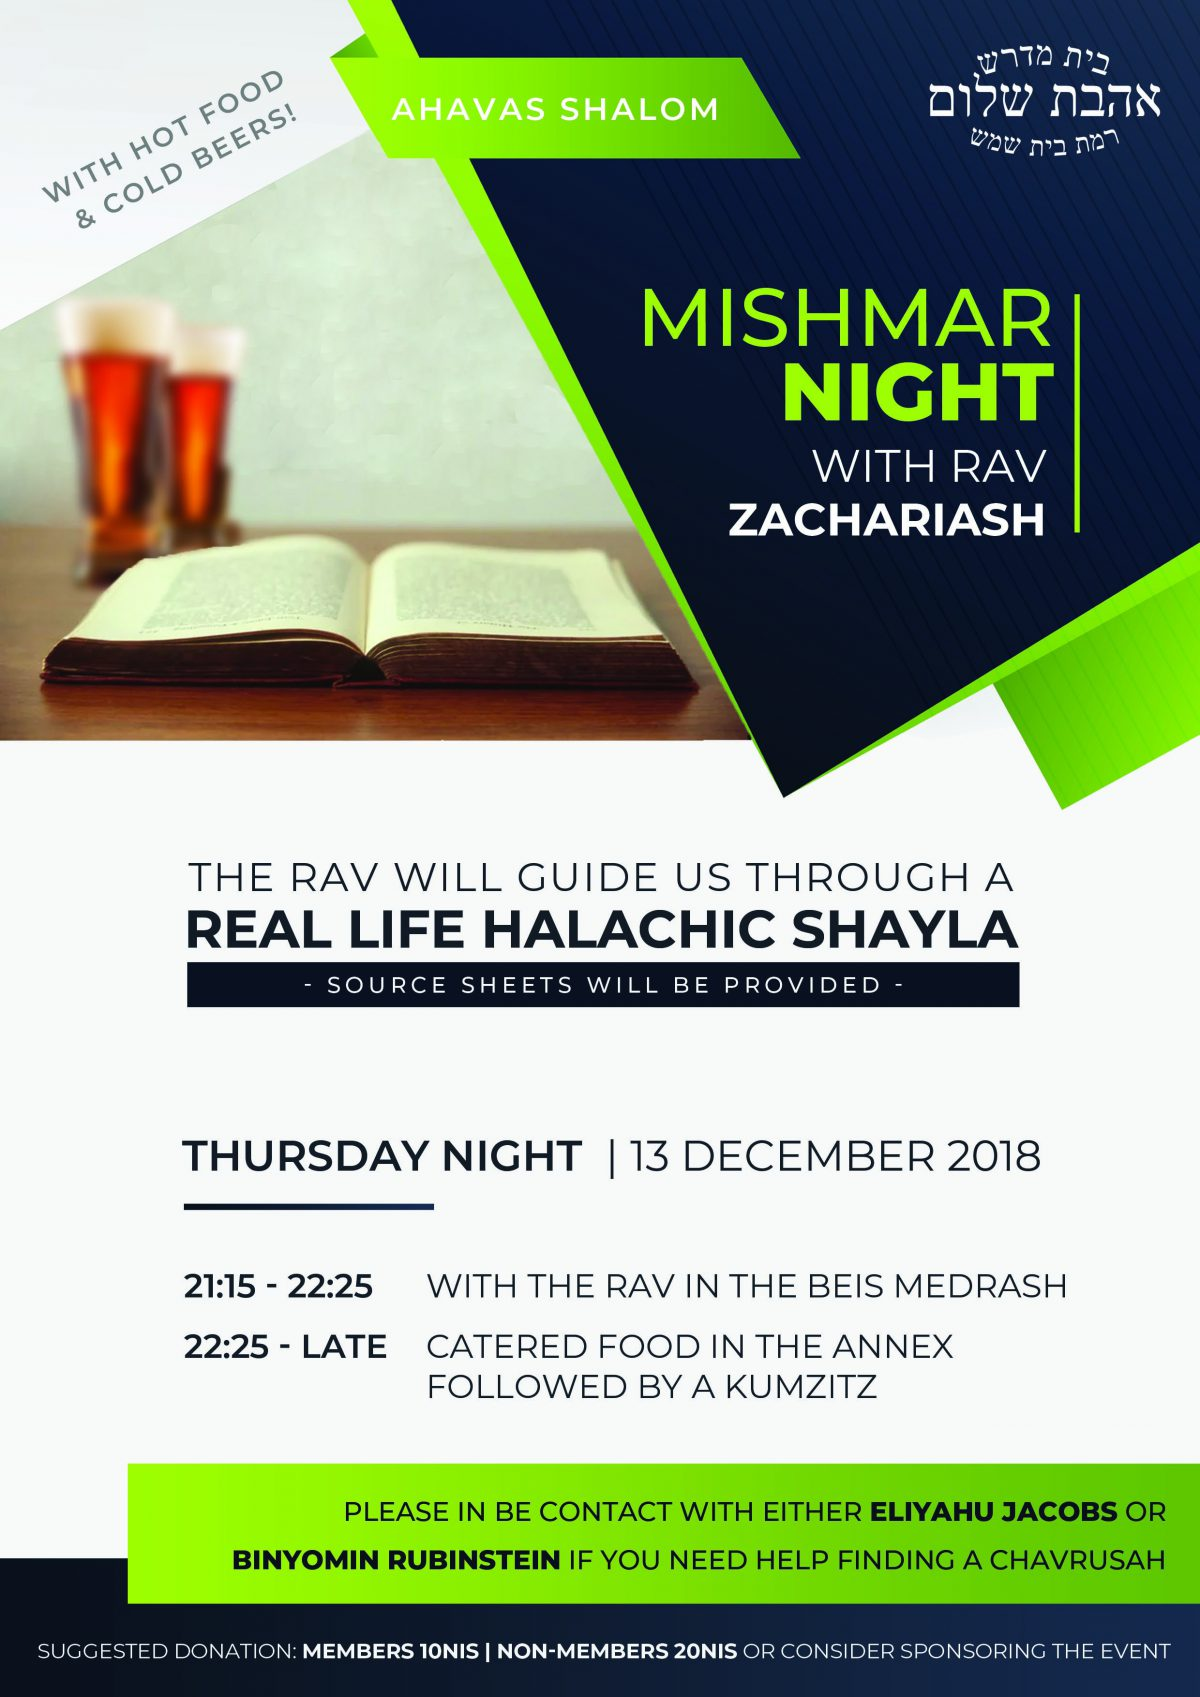 Mishmar December 13, 2018